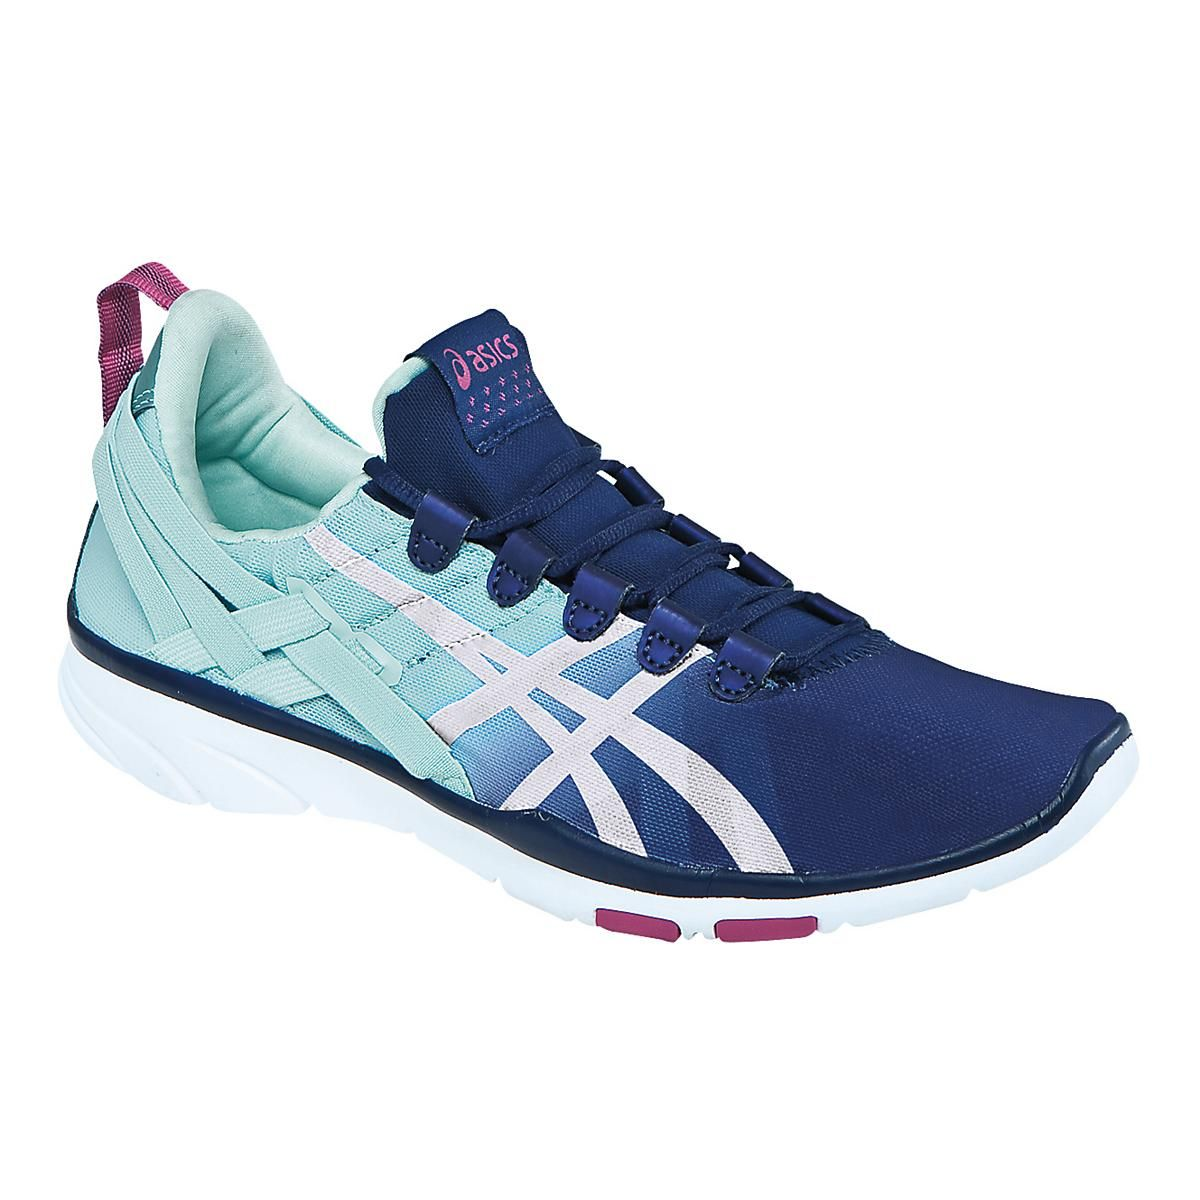 21585f363c01 Sink into the shoe that will take your training performance to the next  level, the Womens ASICS GEL-Fit Sana